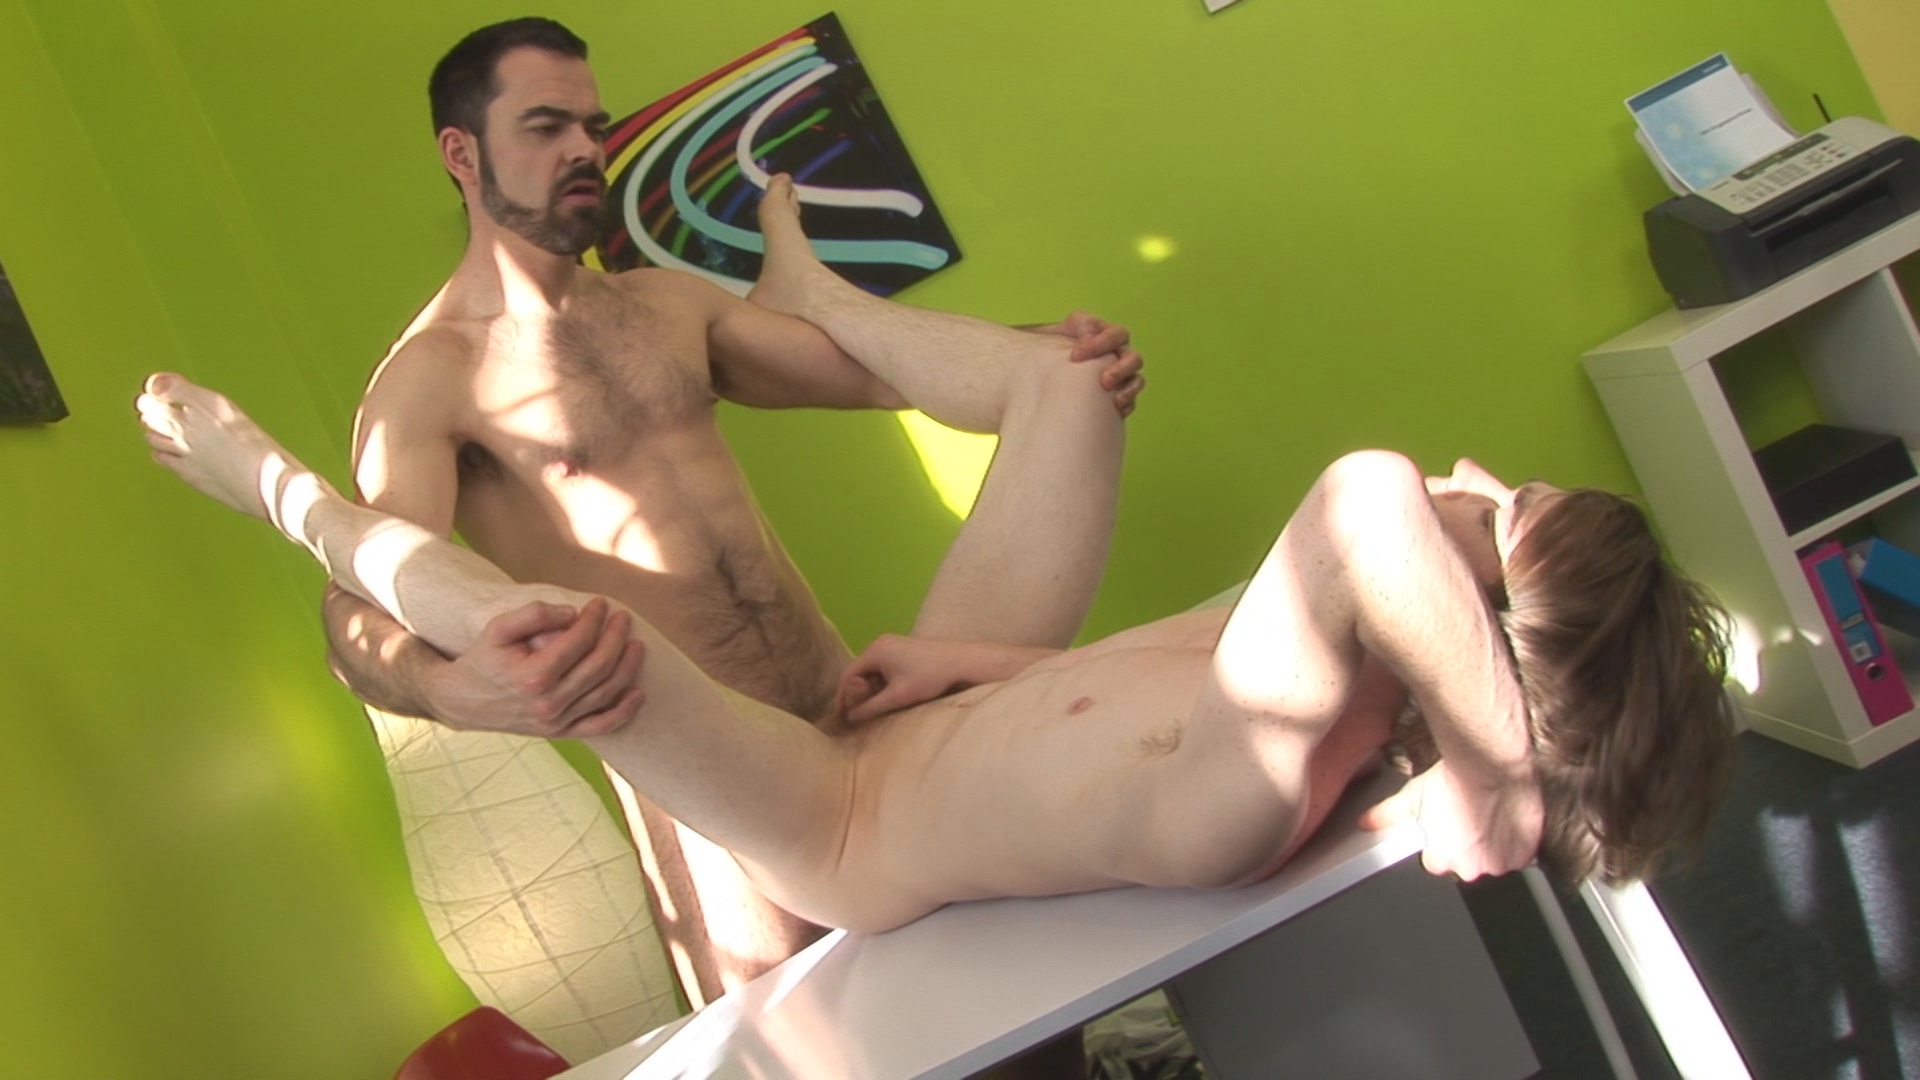 Boss Vs Twink Xvideo gay